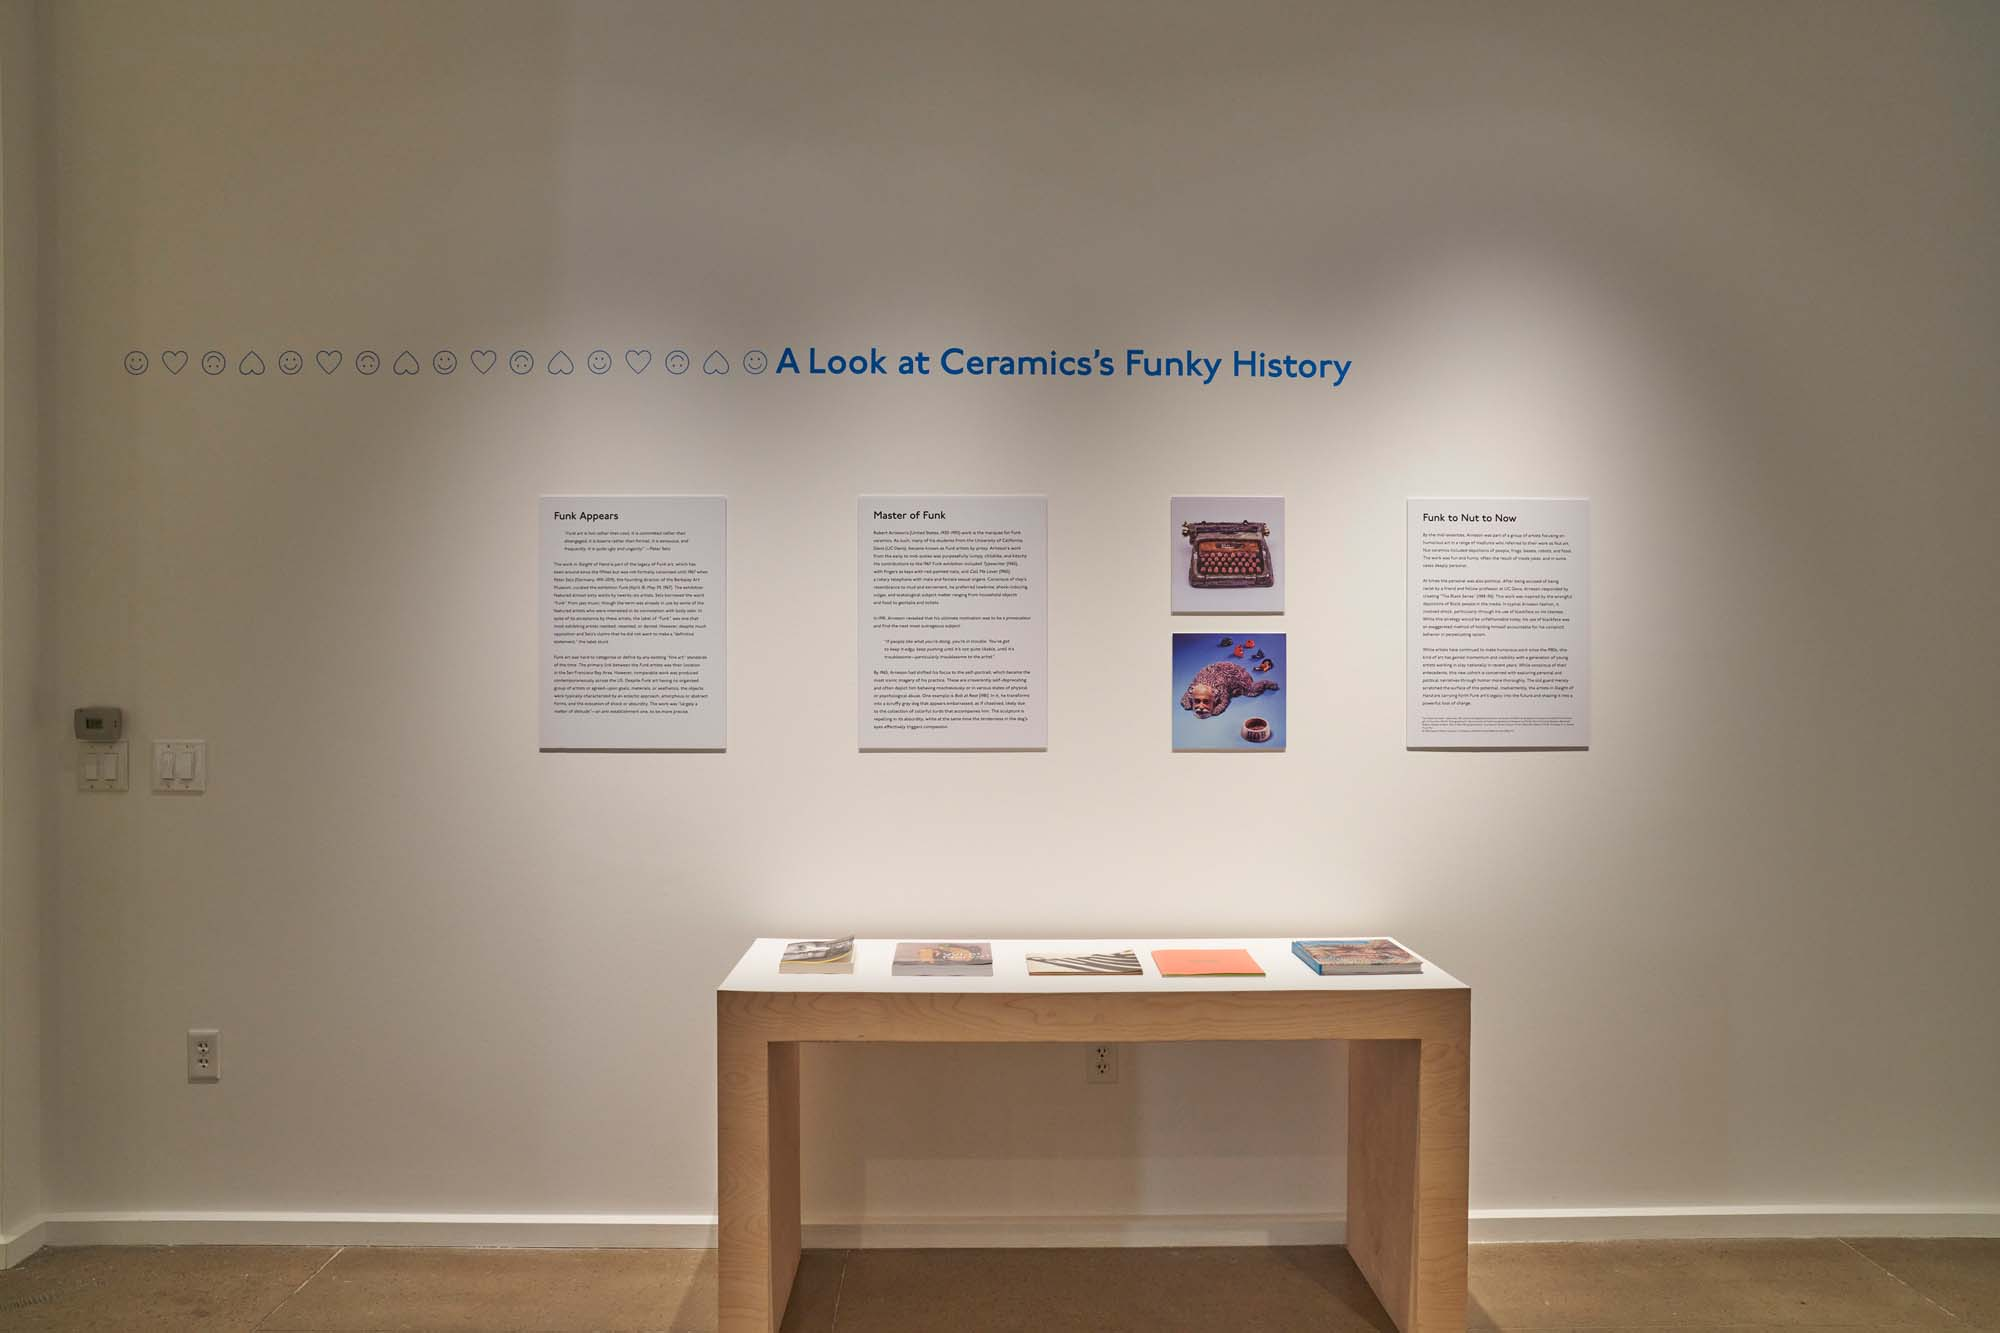 """Image shows a table with publications and text panels about Funk art in American Ceramics. This resource area is titled, """"A Look At Ceramics's Funky History""""."""